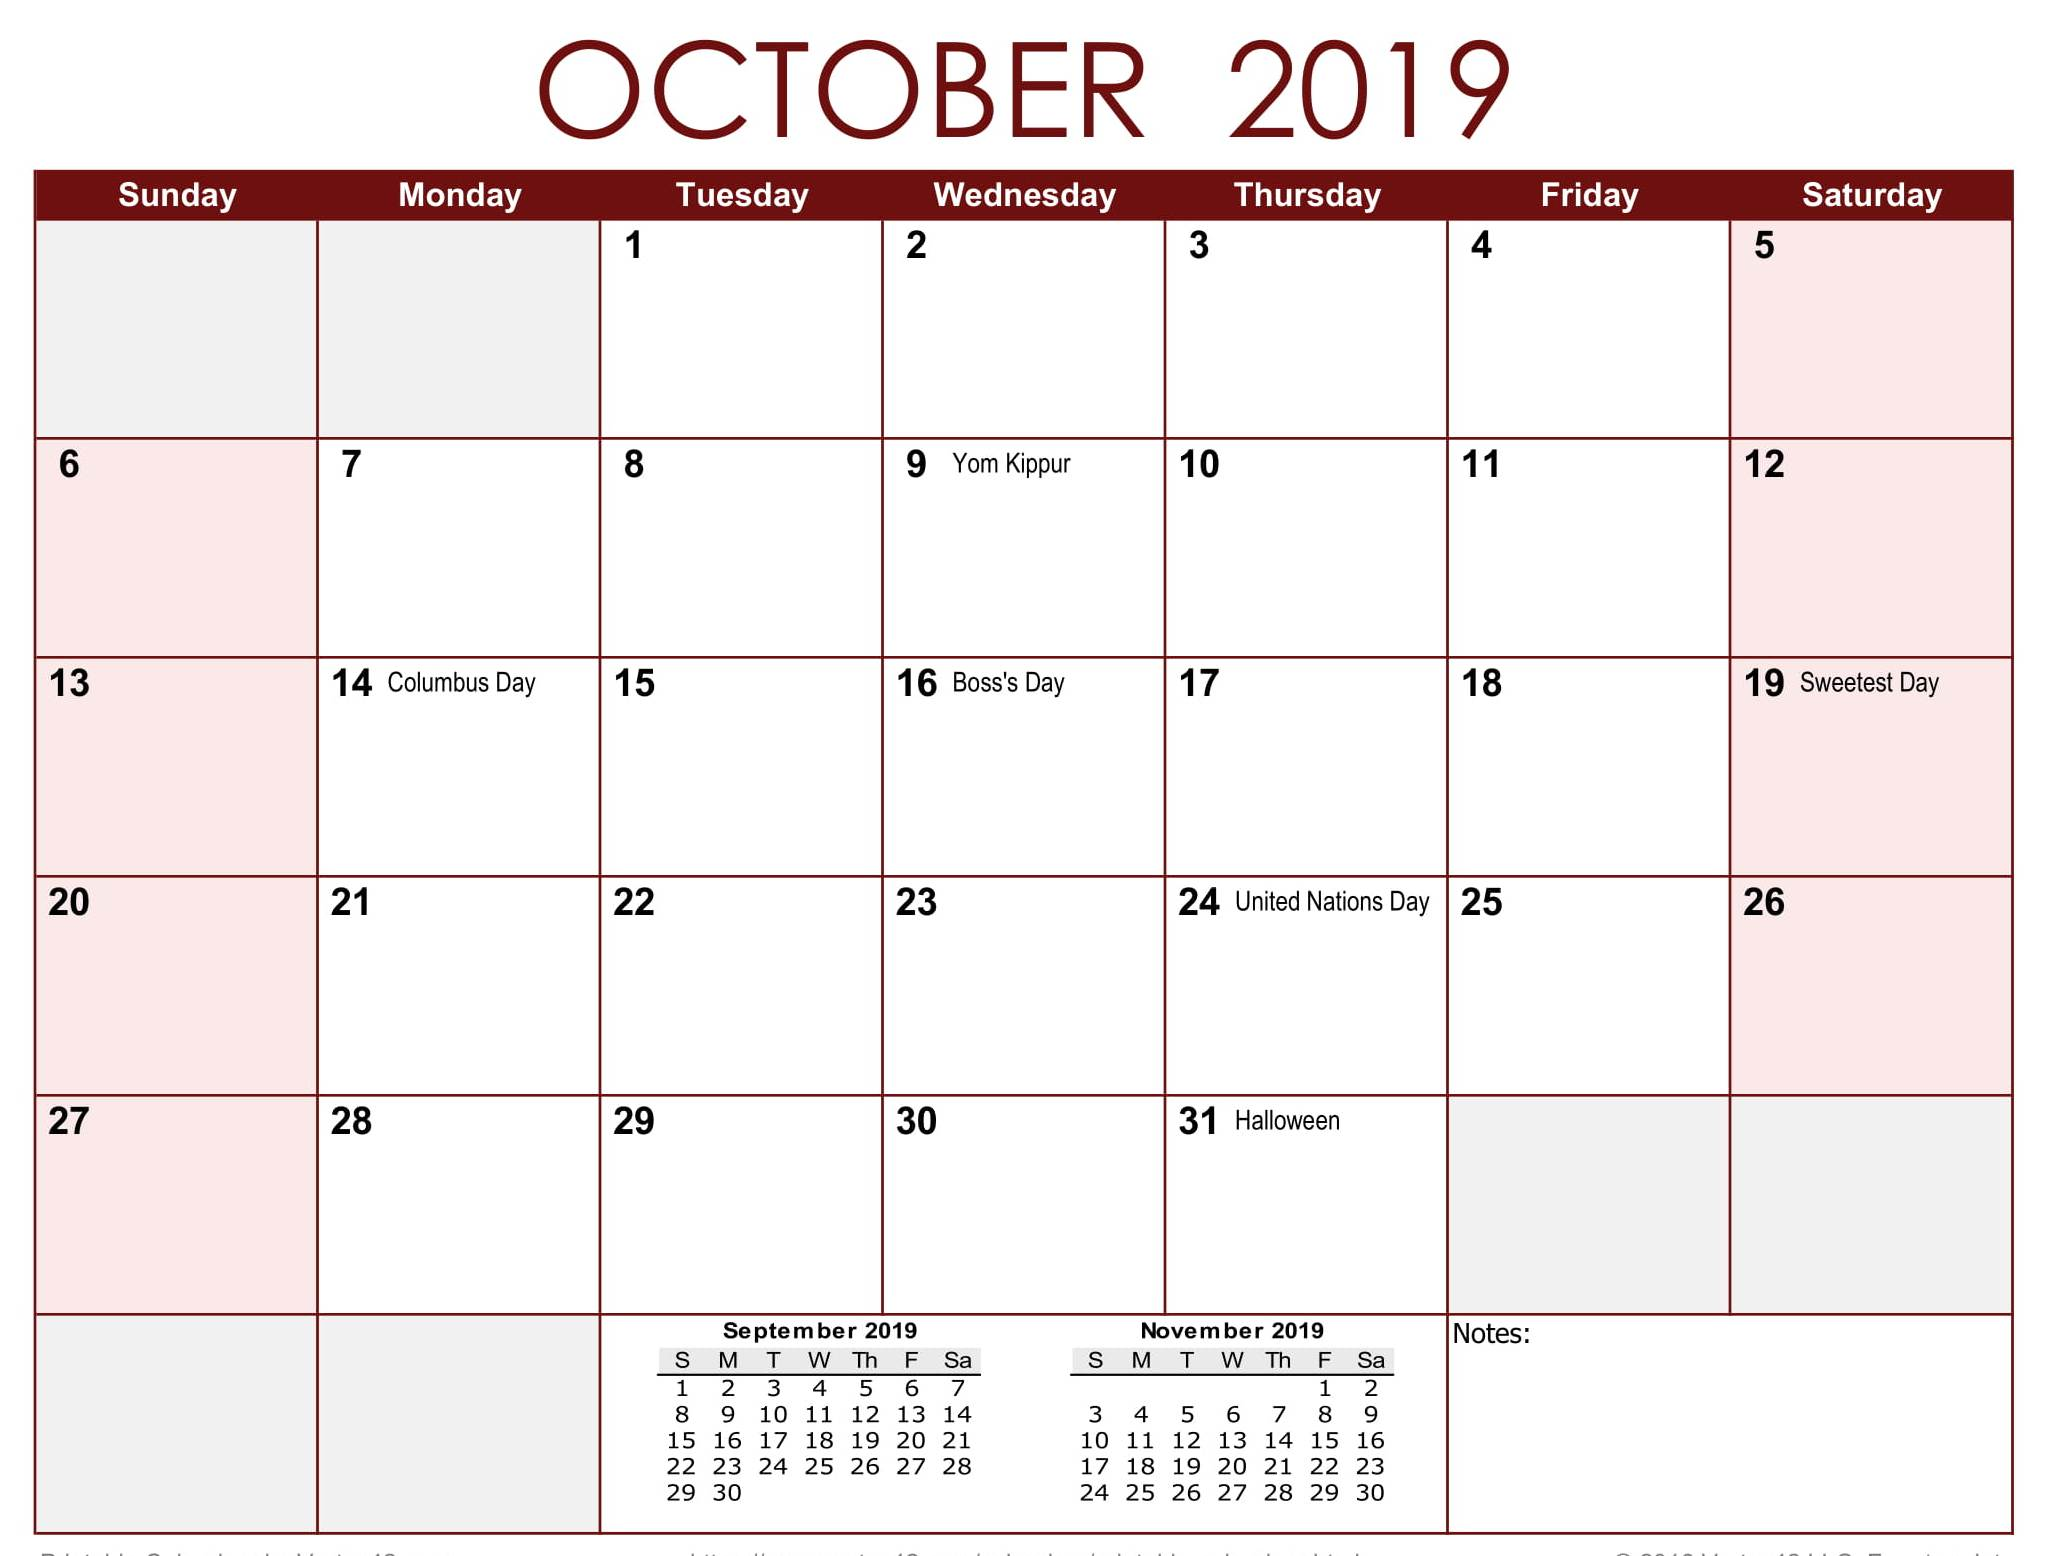 Calendar for October 2019 Holidays